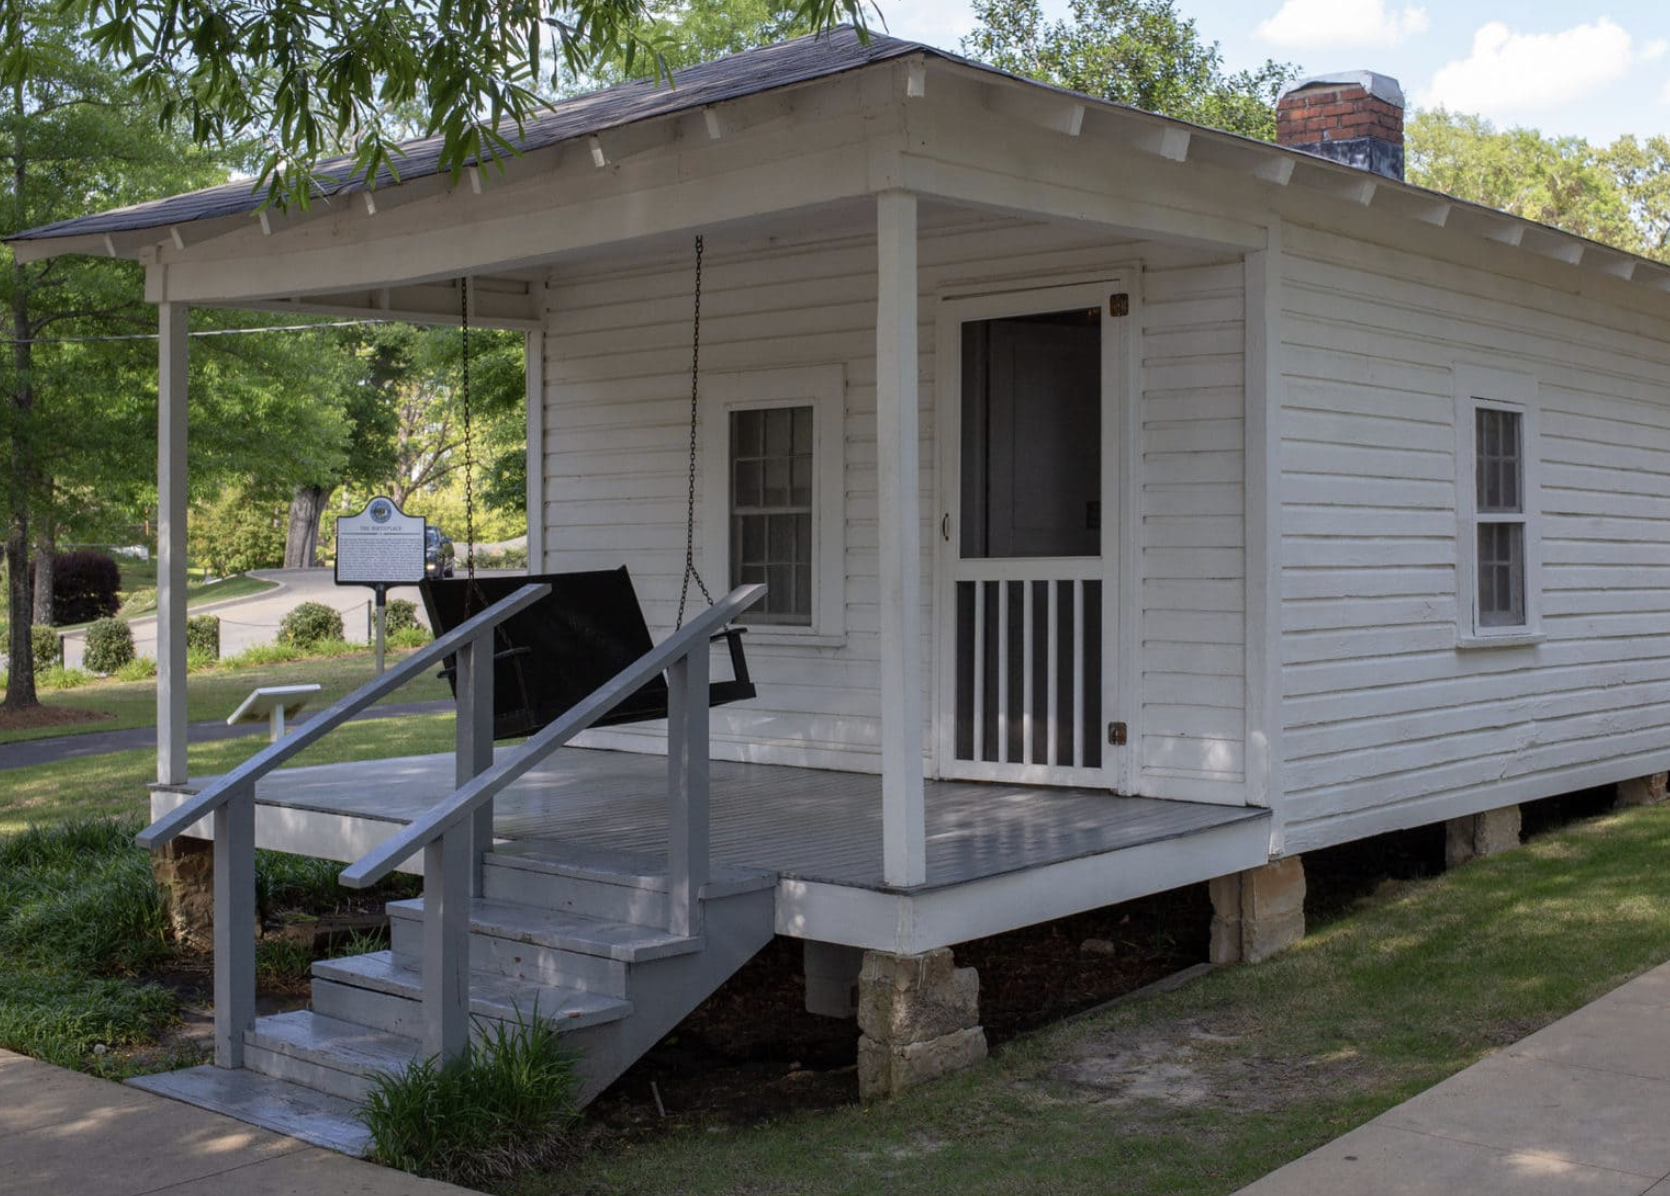 """Beyond Graceland: Tracing Elvis Presley's legacy back to his humble beginnings in Tupelo, Mississippi,"" Roadtrippers, Jan. 2020"